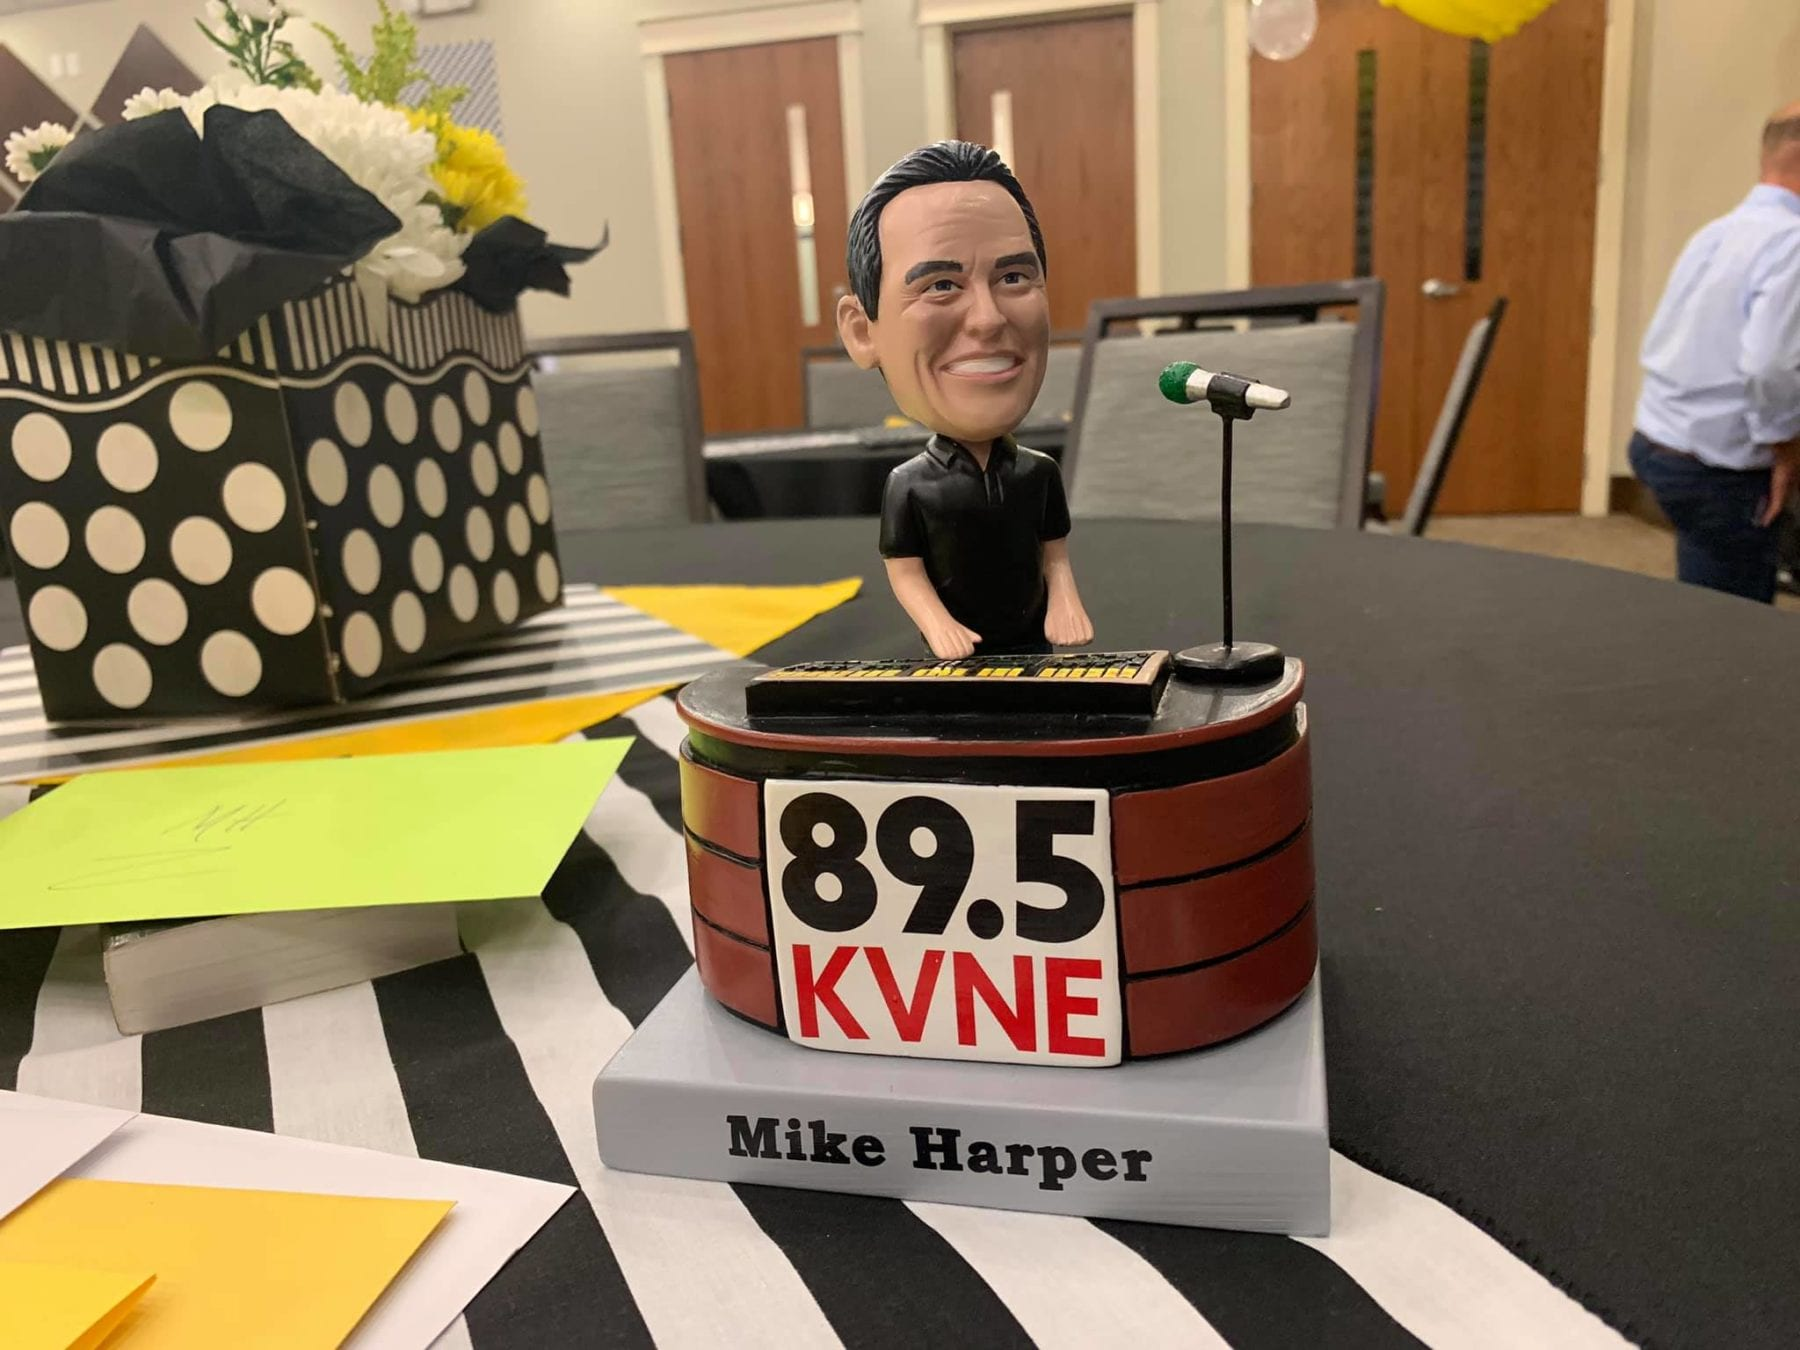 89.5 KVNE Christian Radio 30 Years Heard On Air Blog Featured Image